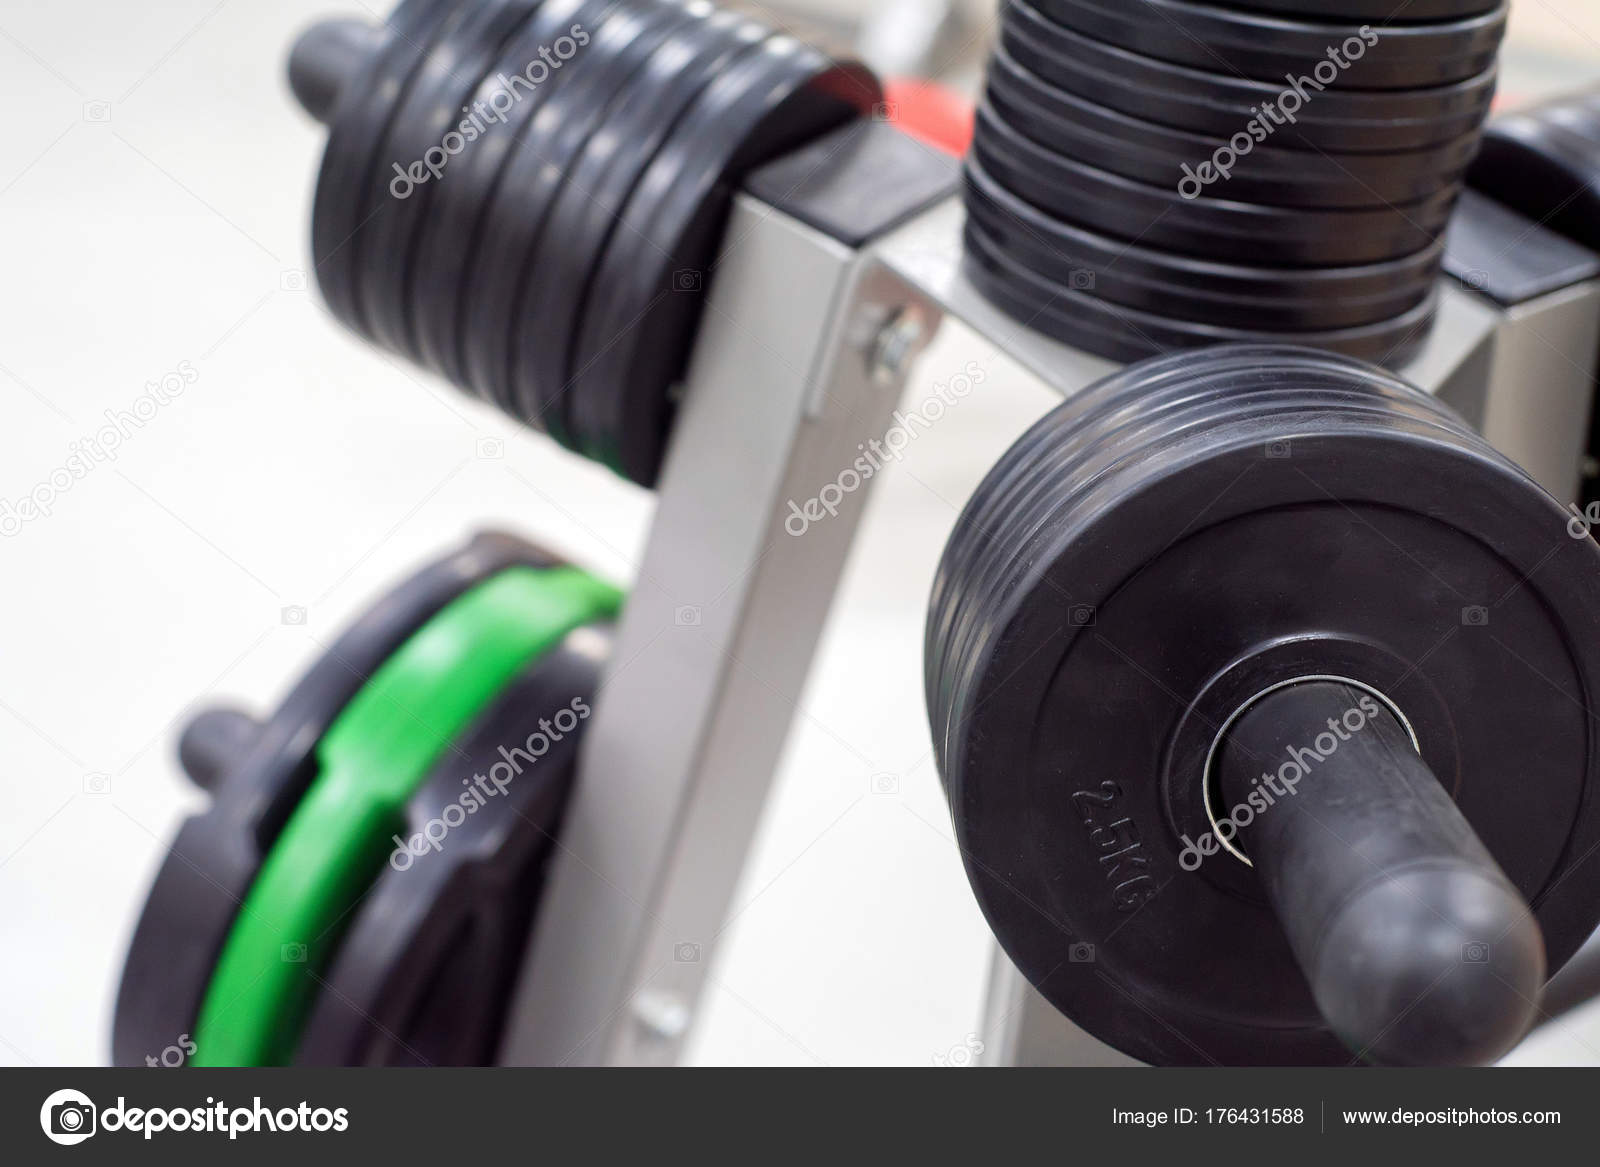 Dumbbell and barbell weight plates on plate holder. Rack with weghts or plate tree. Modern gym u2014 Photo by Yakov_Oskanov & Fitness dumbbell and barbell weight plates u2014 Stock Photo ...